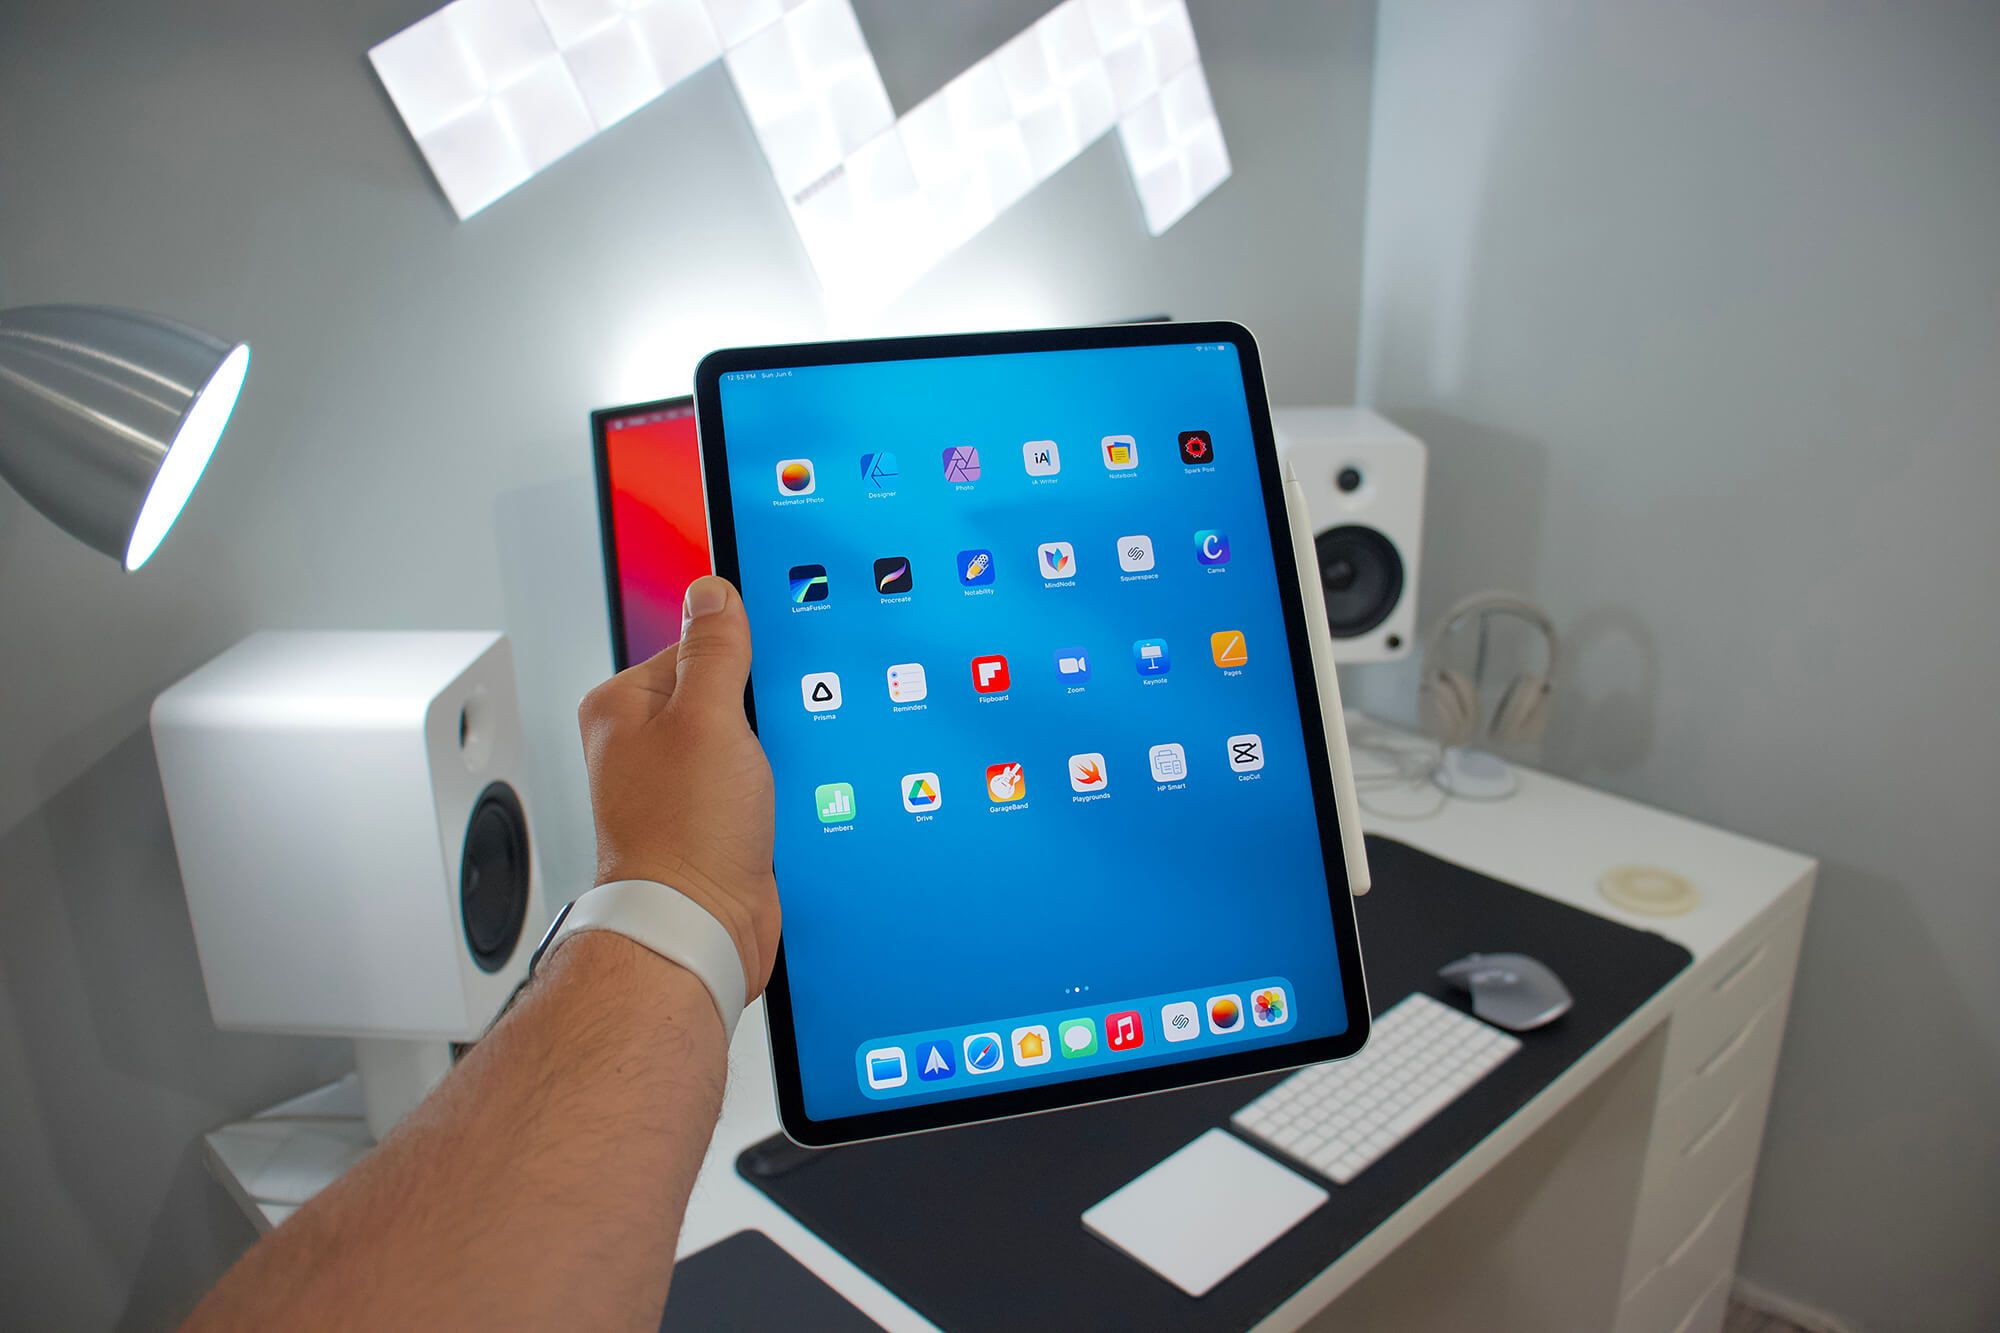 Often, Conor uses his iPad Pro as a laptop replacement